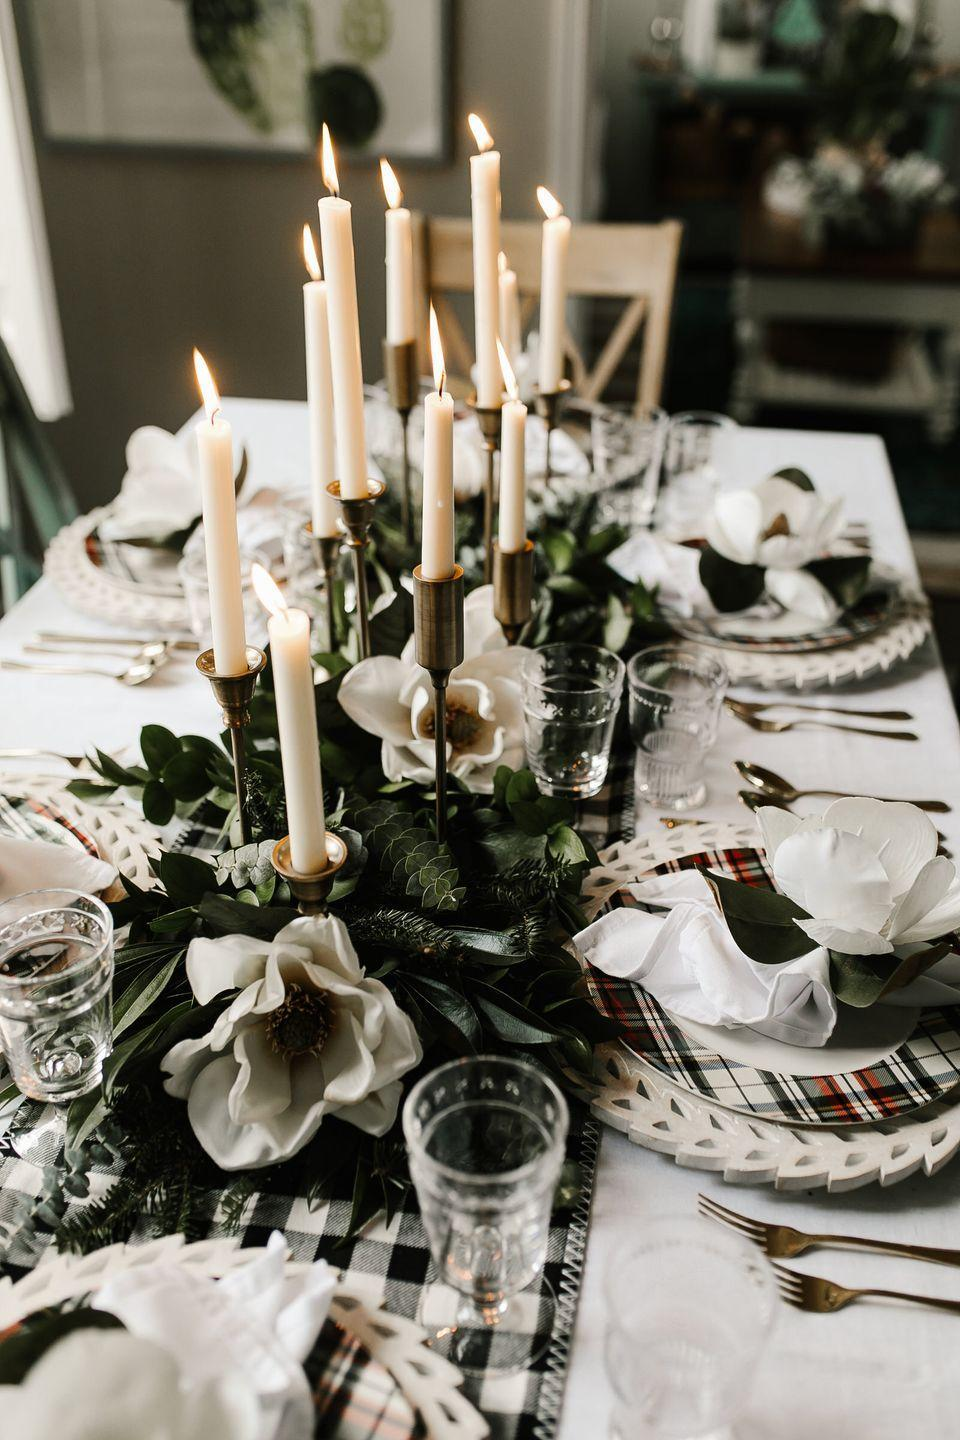 "<p>Poinsettias and holly are the plants of the season, but they run the risk of feeling a tad...<em>predictable.</em> To shake things up, add some leafy greens and magnolia blossoms to your centerpiece.<br></p><p><a href=""https://kbstyled.com/2018/12/christmas-tablescape/"" rel=""nofollow noopener"" target=""_blank"" data-ylk=""slk:Via KBStyled"" class=""link rapid-noclick-resp""><em>Via KBStyled</em></a></p>"